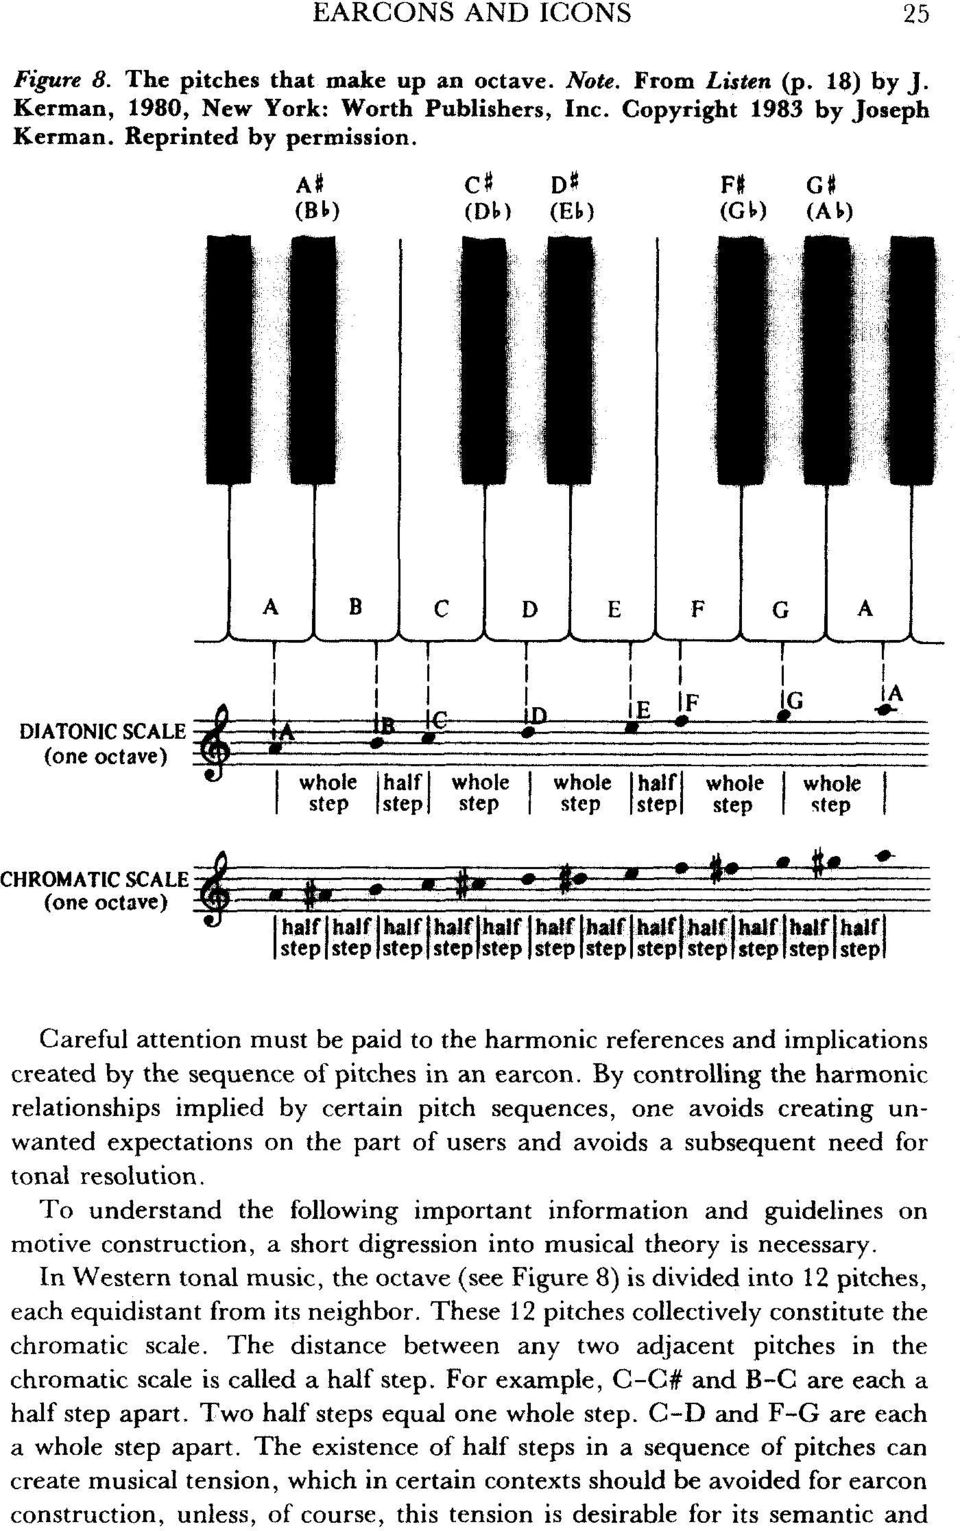 By controlling the harmonic relationships implied by certain pitch sequences, one avoids creating unwanted expectations on the part of users and avoids a subsequent need for tonal resolution.